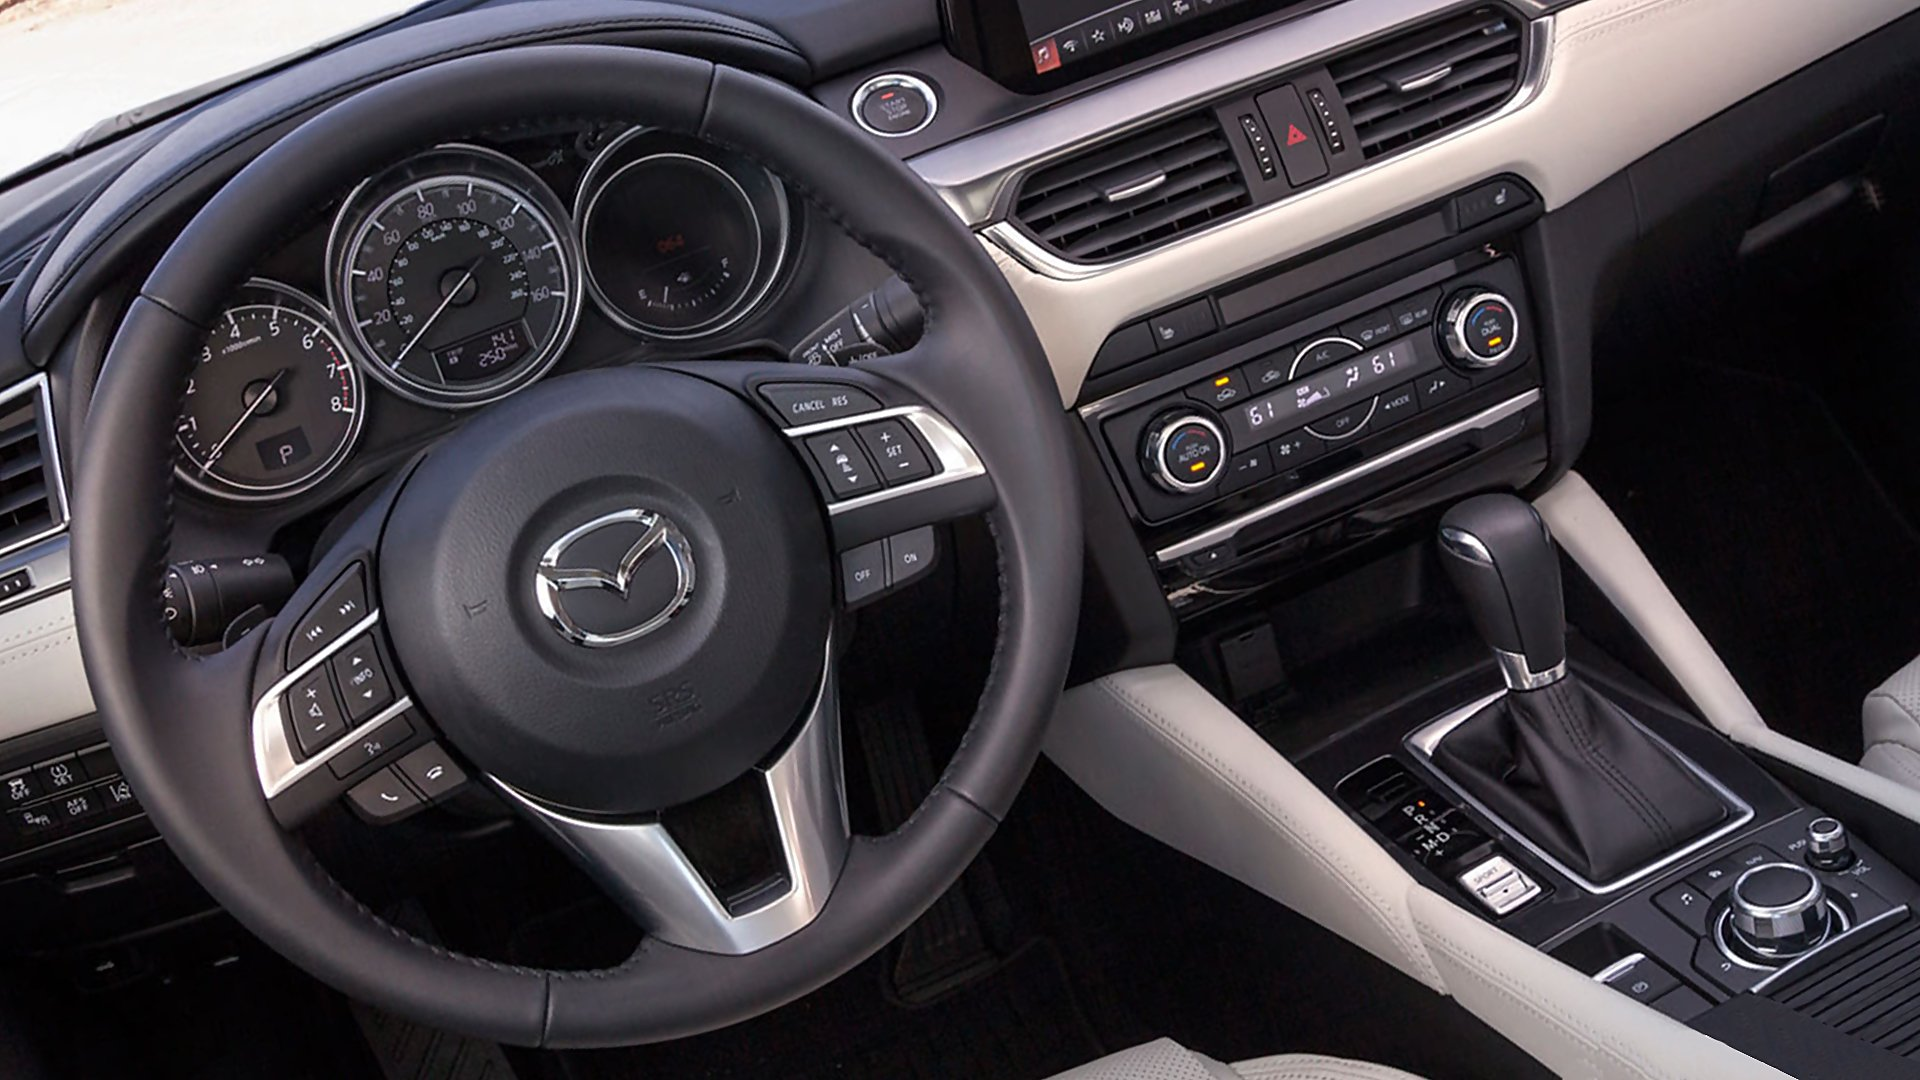 New 2019 Mazda BT 50 Interior Design